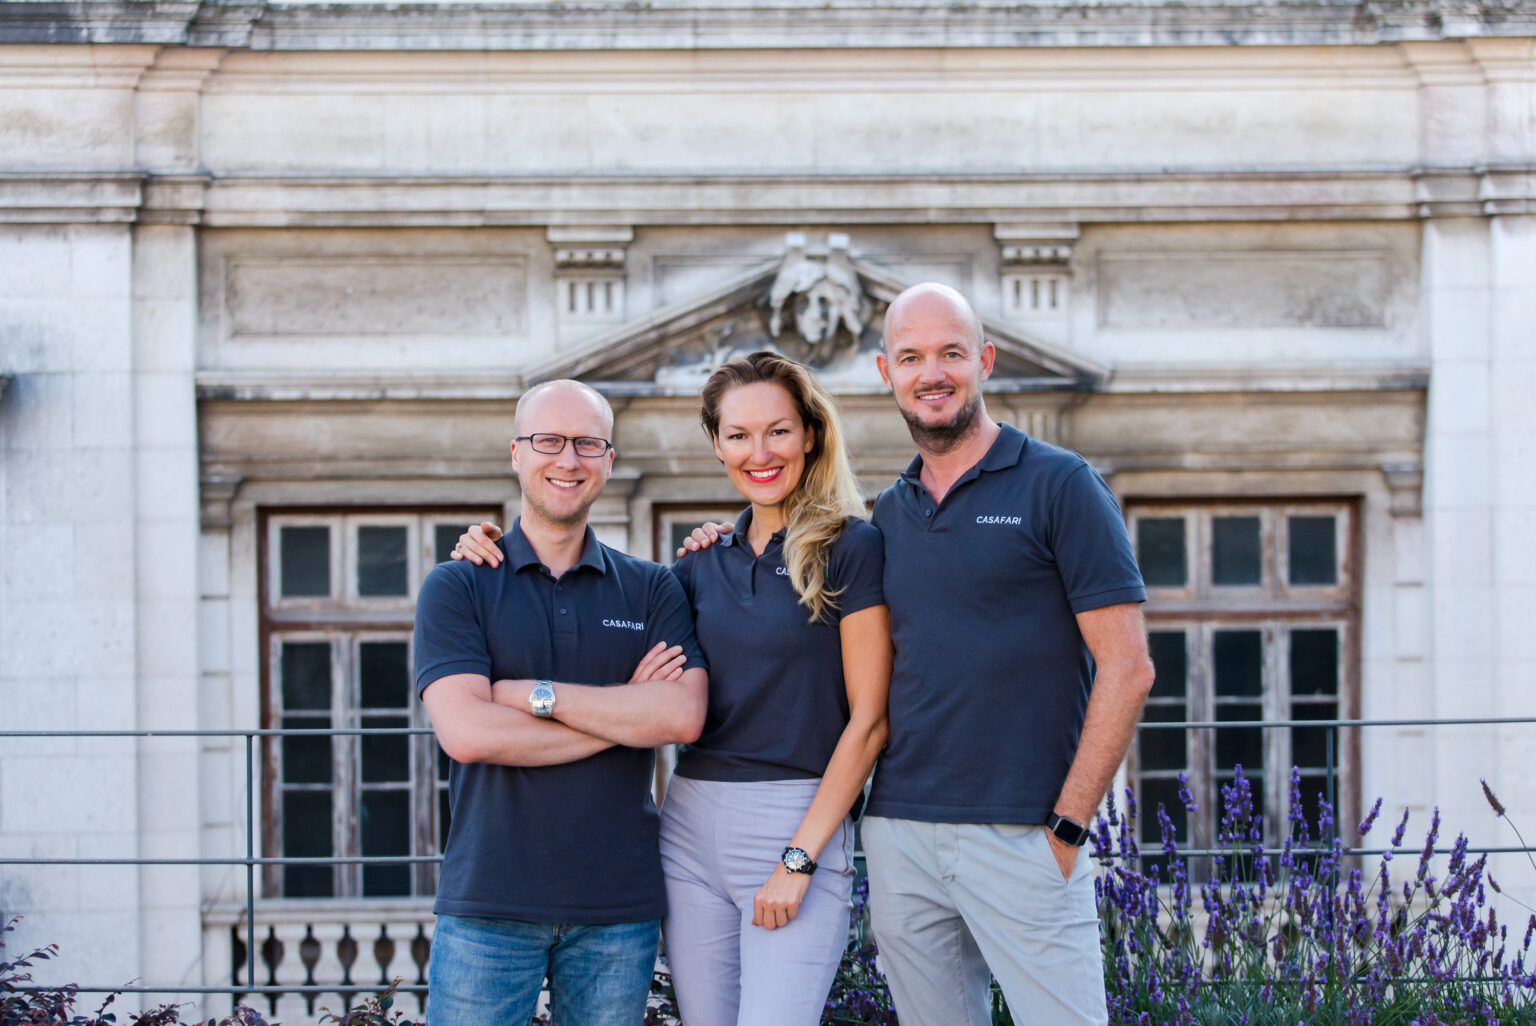 CASAFARI secures $135 million to expand its innovative Real Estate platform across Europe